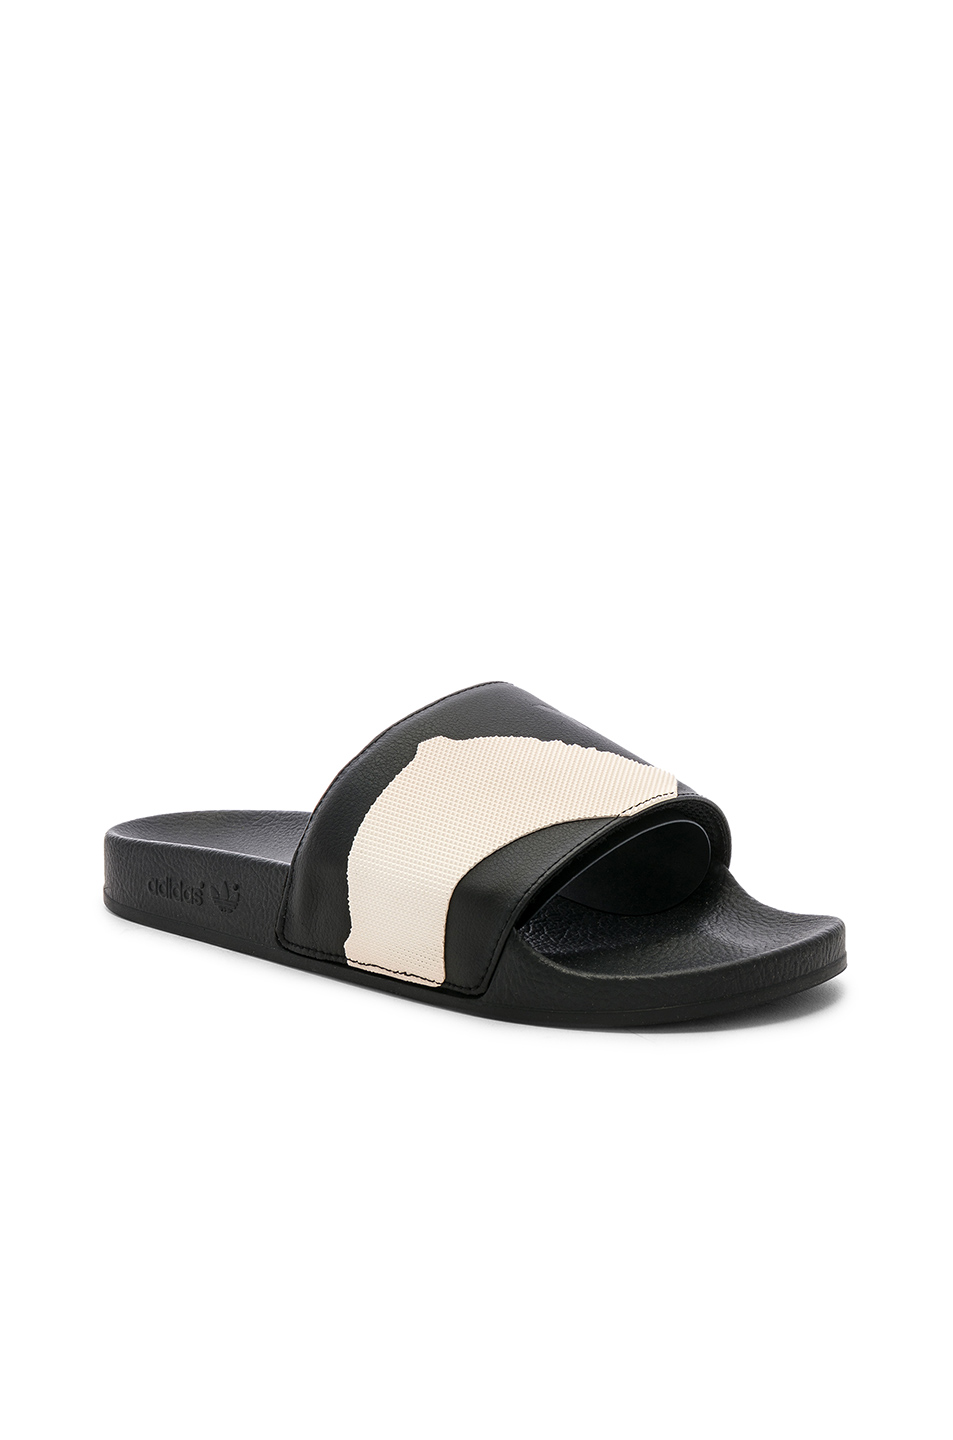 dcb985a81 Buy Original Y-3 Yohji Yamamoto Adilette Sandals at Indonesia ...